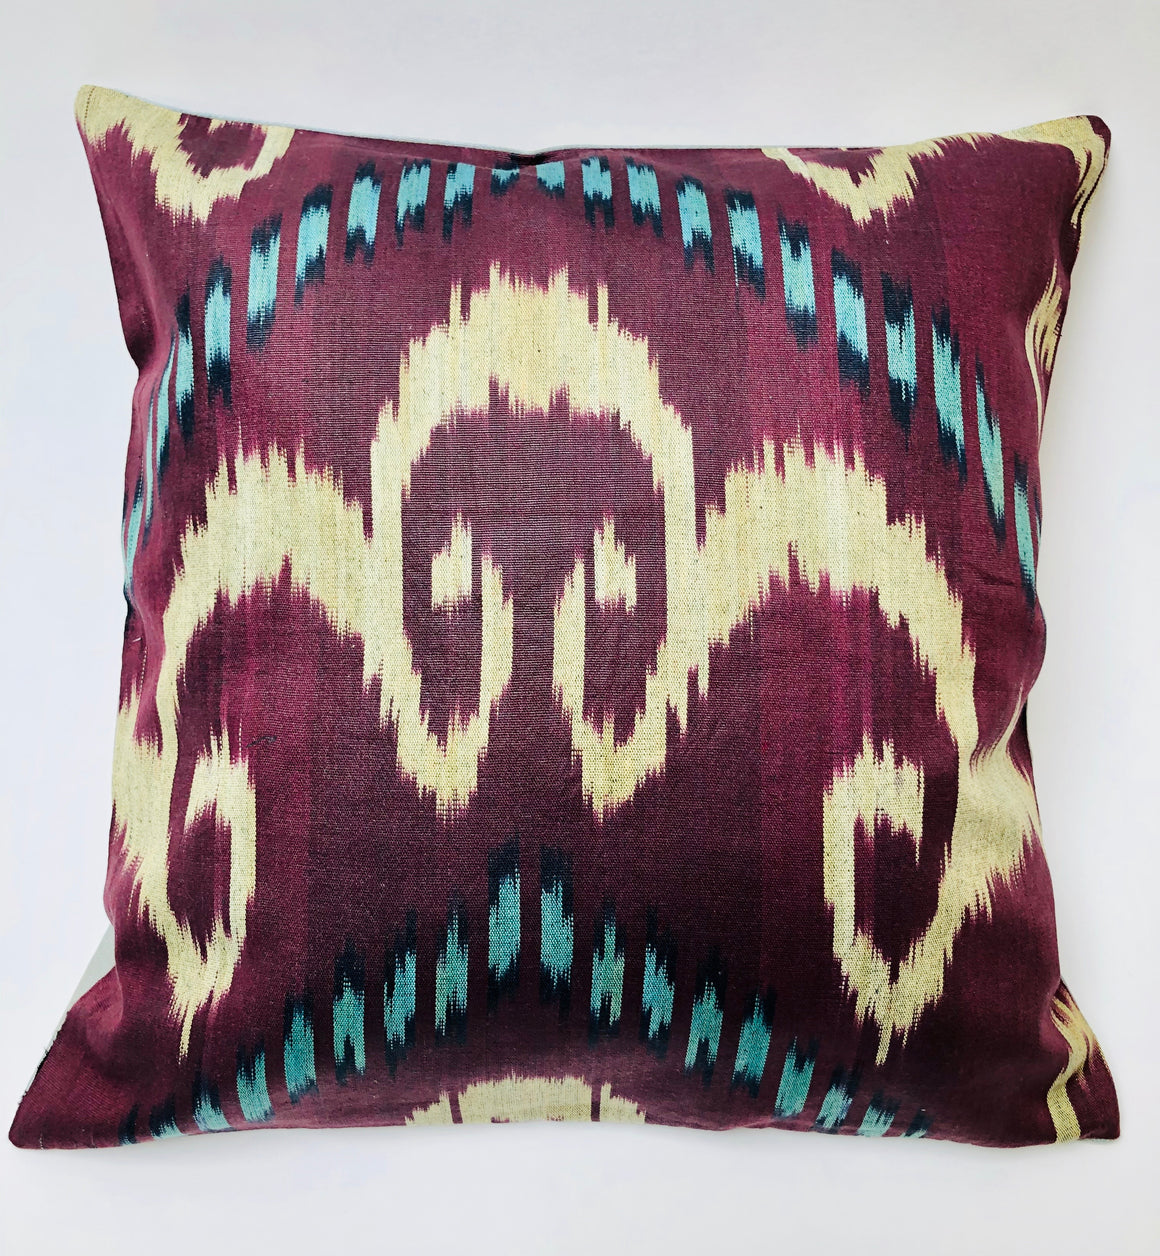 Embroidered Silk & Ikat Pillow - Pale Blue